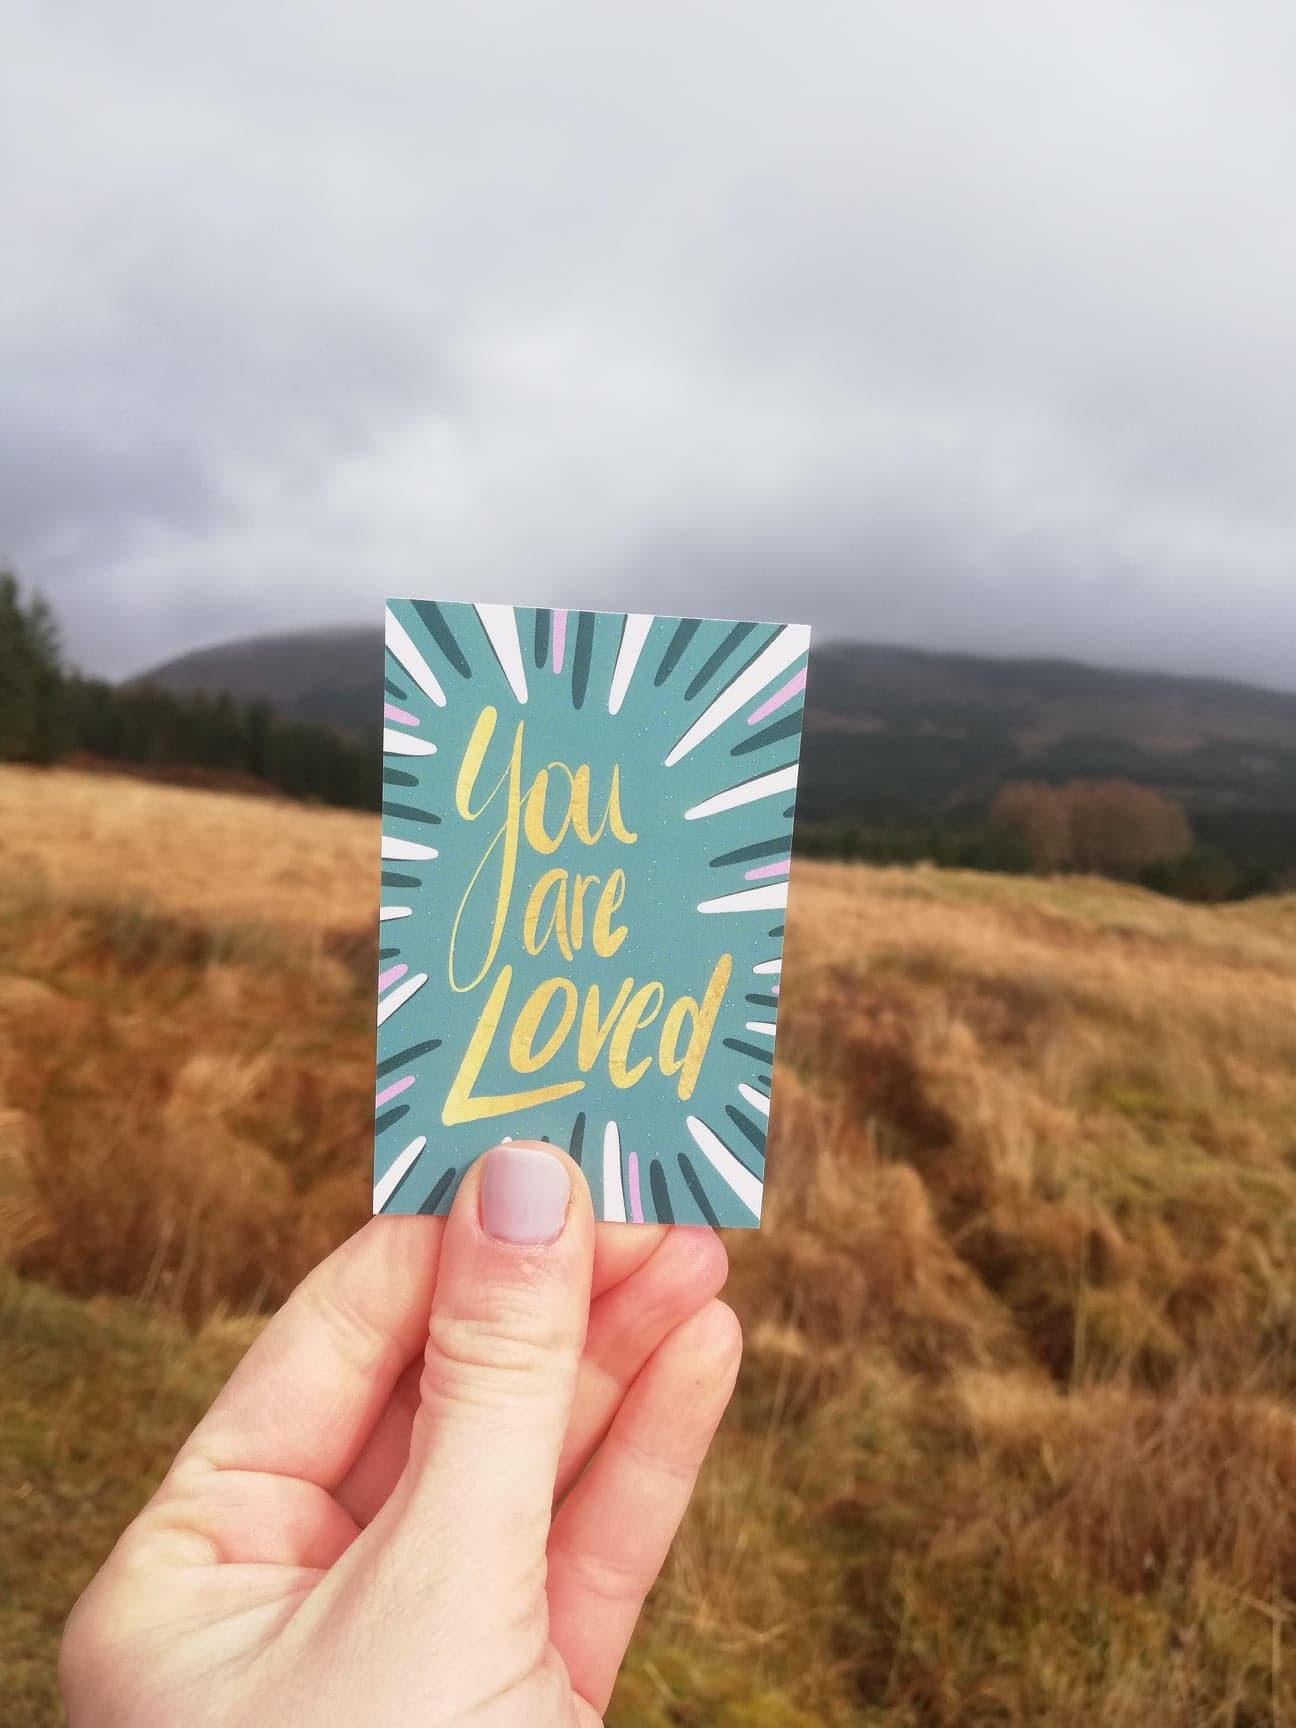 You are Loved - encouragement card by Lucy Joy